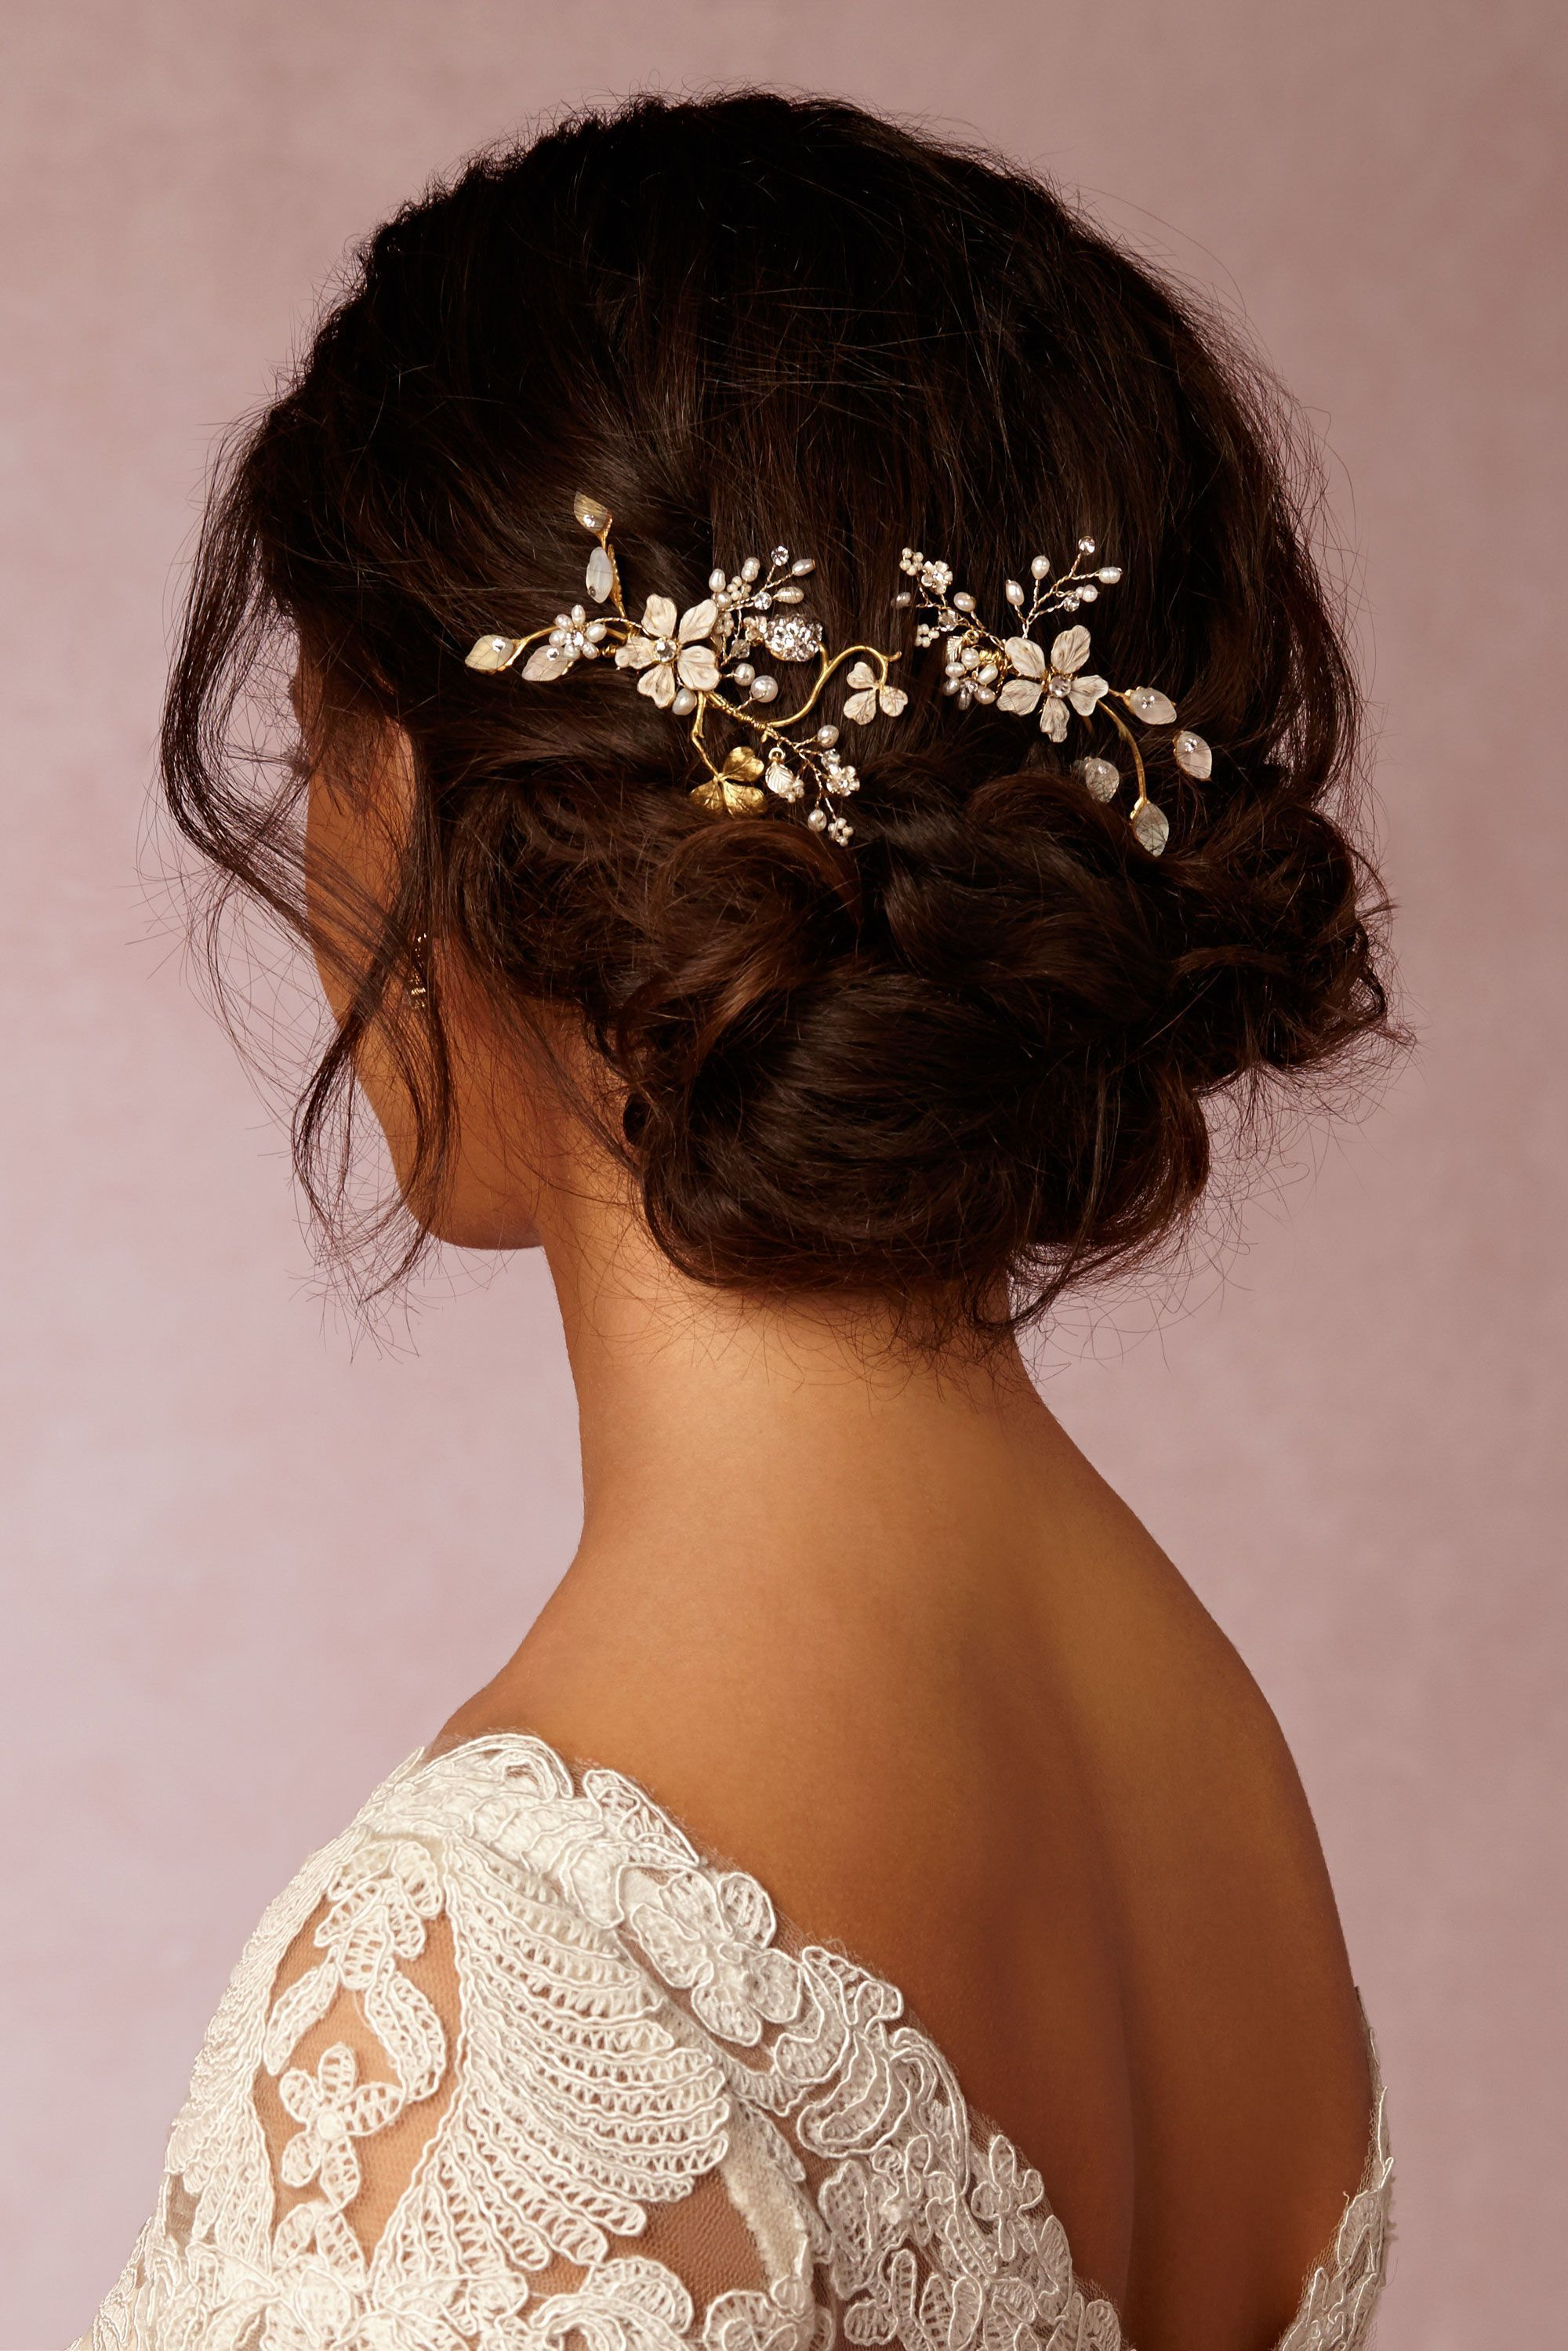 30 amazing picture of simple wedding hair side pieces ideas just because it is a